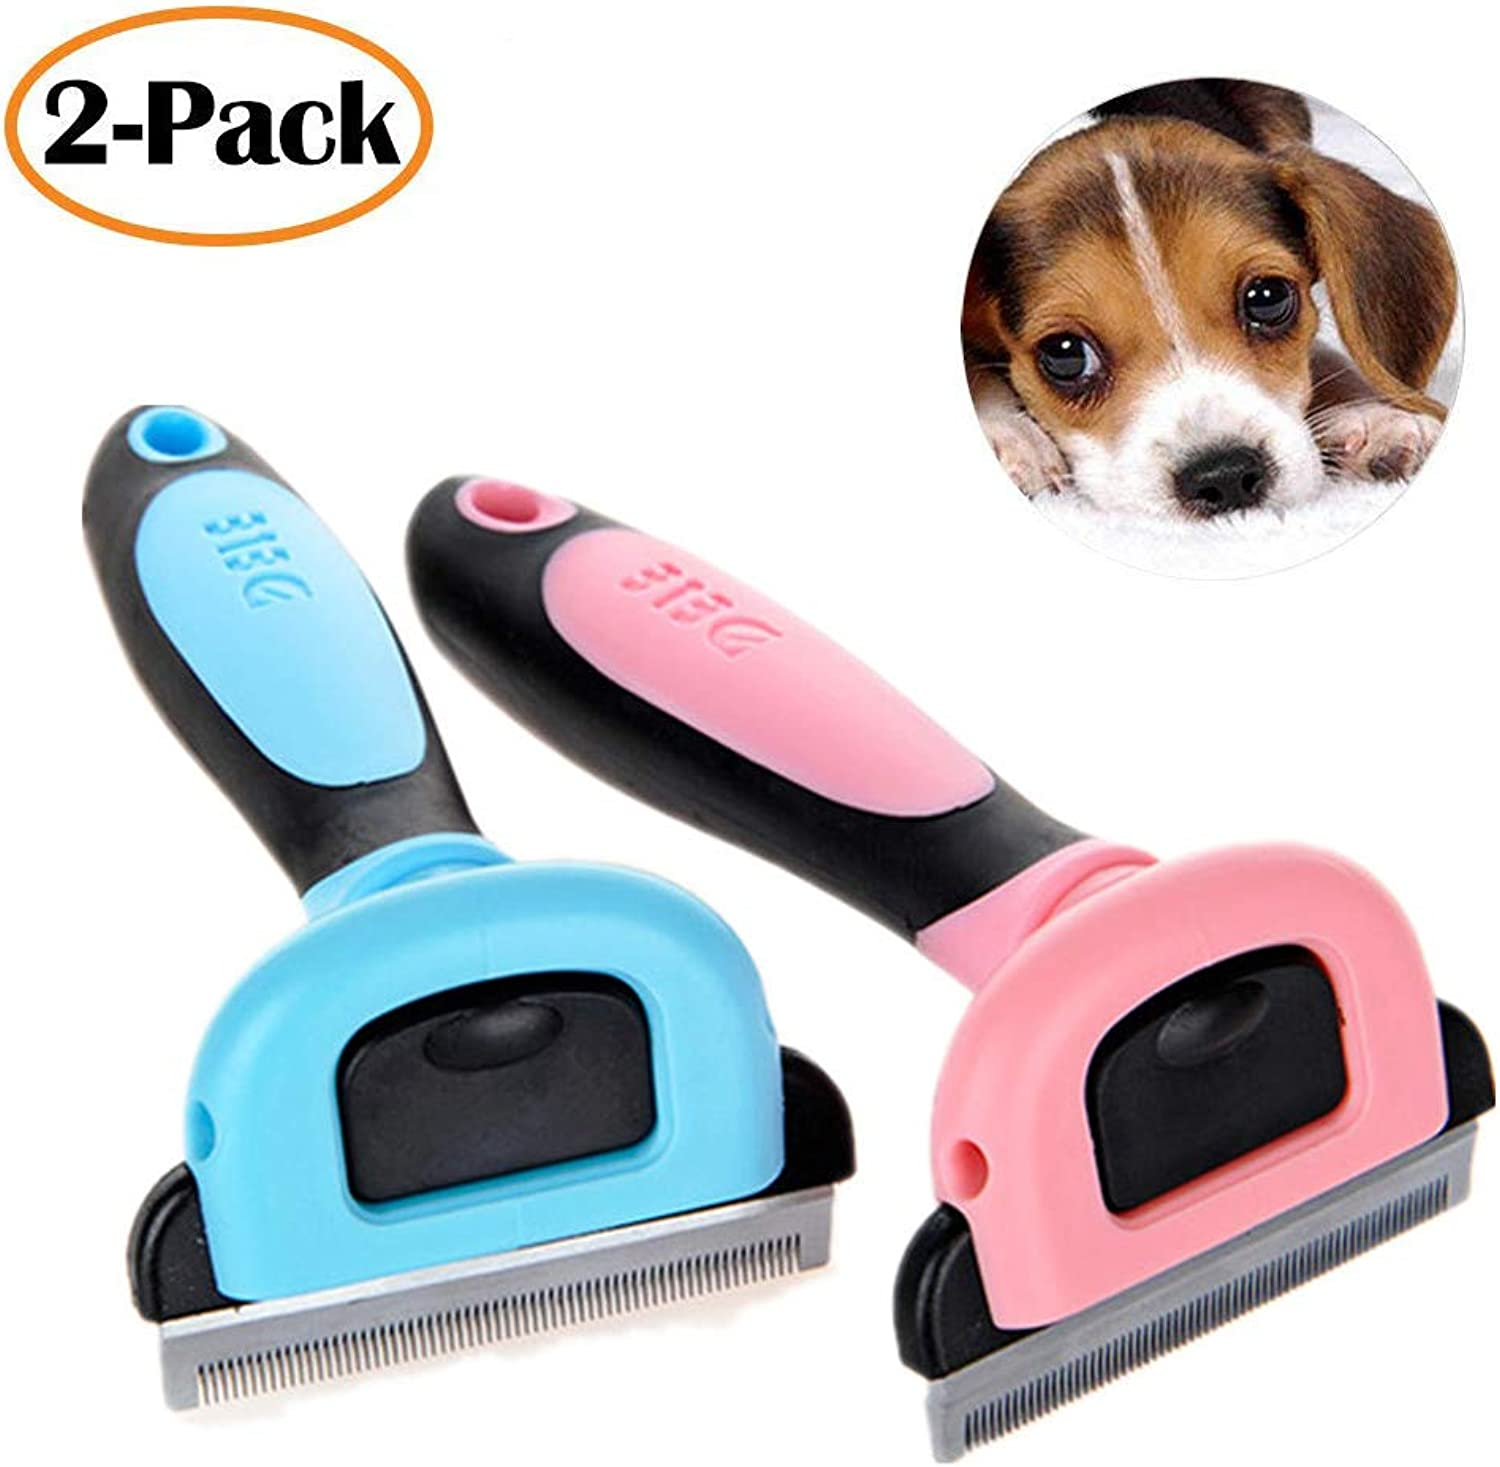 Pet Grooming Brush Deshedding Tool Hair Removal Comb, Dogs and Cats Small Animals 2 Pack,M